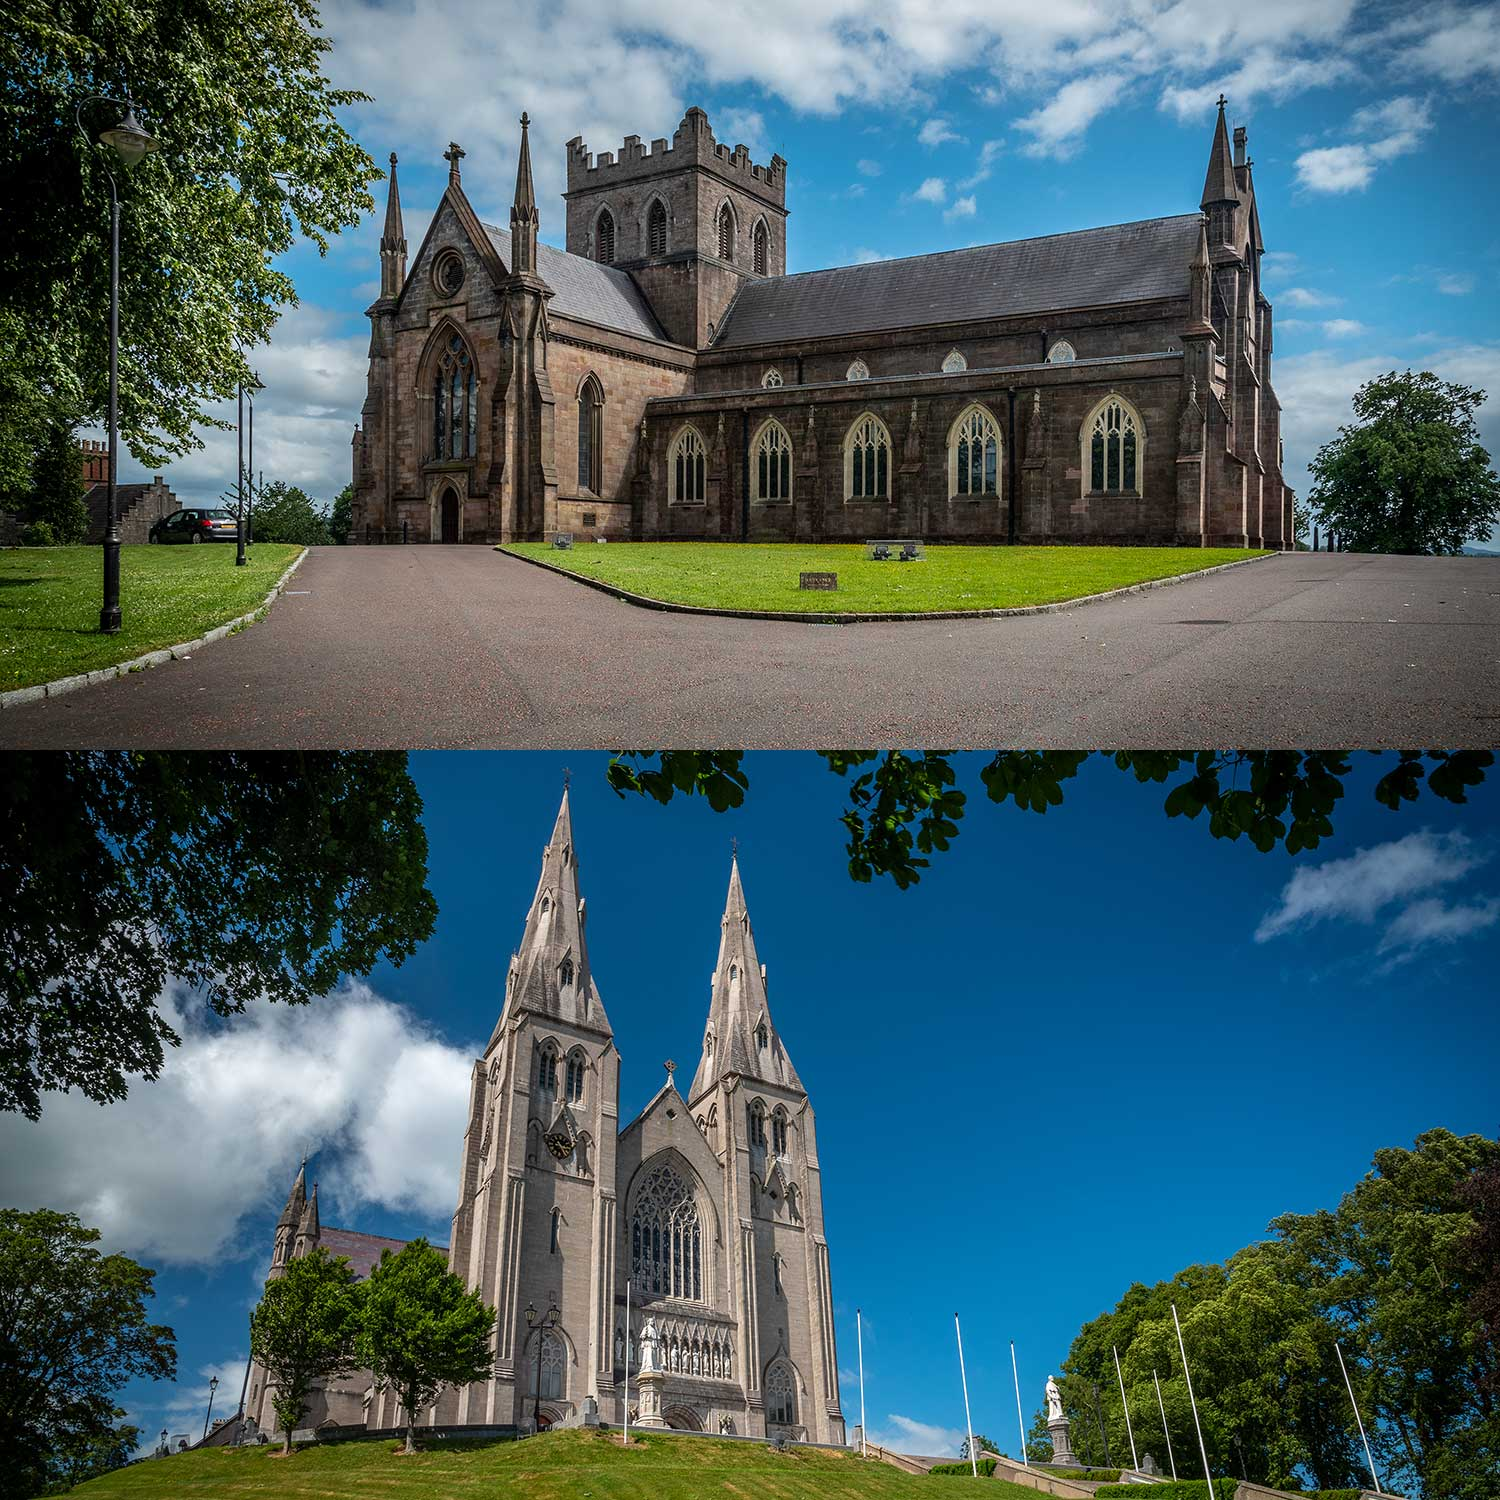 Top: St Patrick's Church of Ireland Cathedral. Bottom: St Patrick's Roman Catholic Cathedral. Both in Armagh City, just a short distance apart.